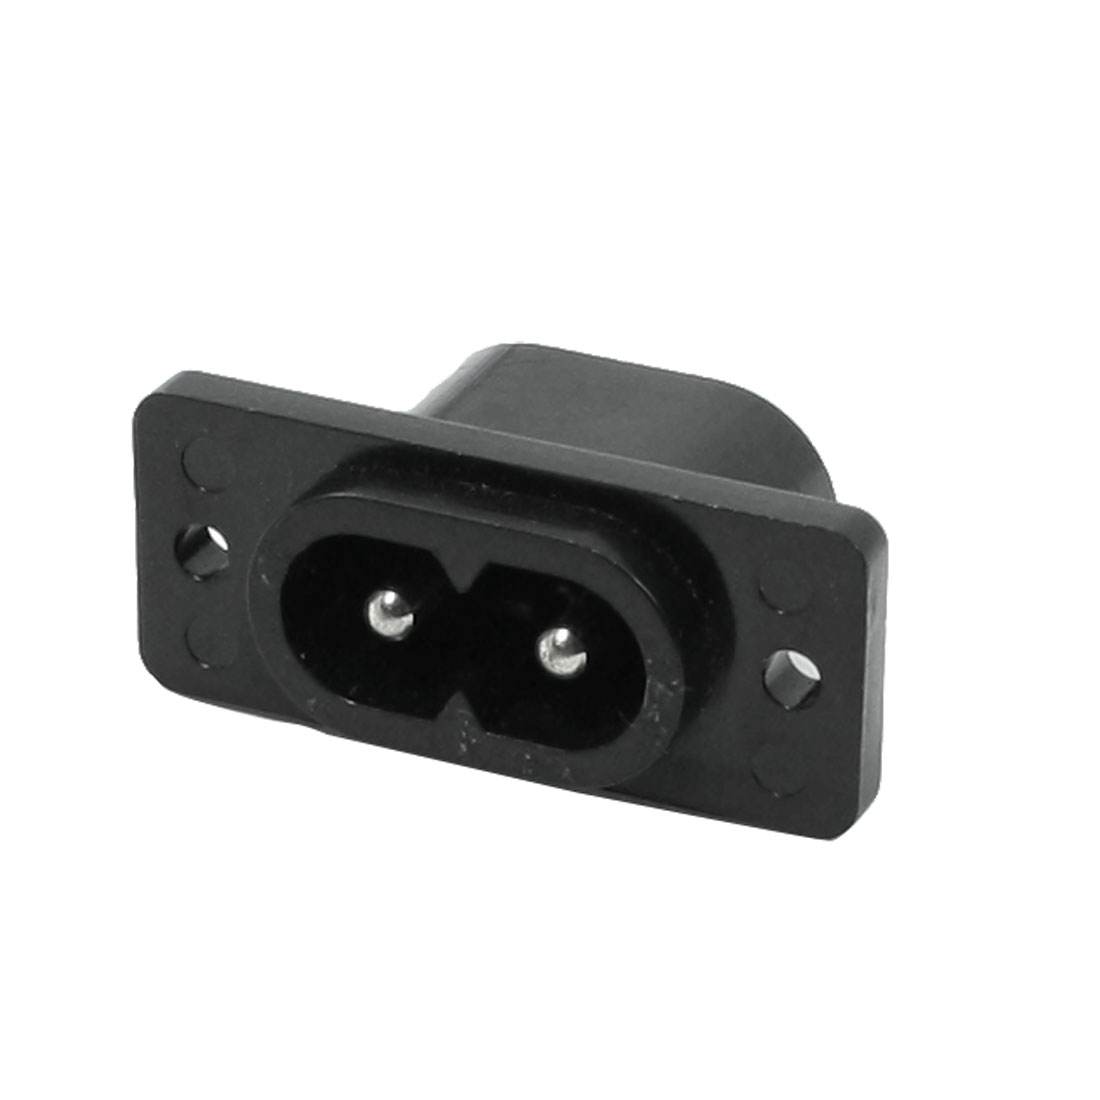 AC 250V 1A 2 Terminal IEC C8 Inlet Mains Power Male Socket